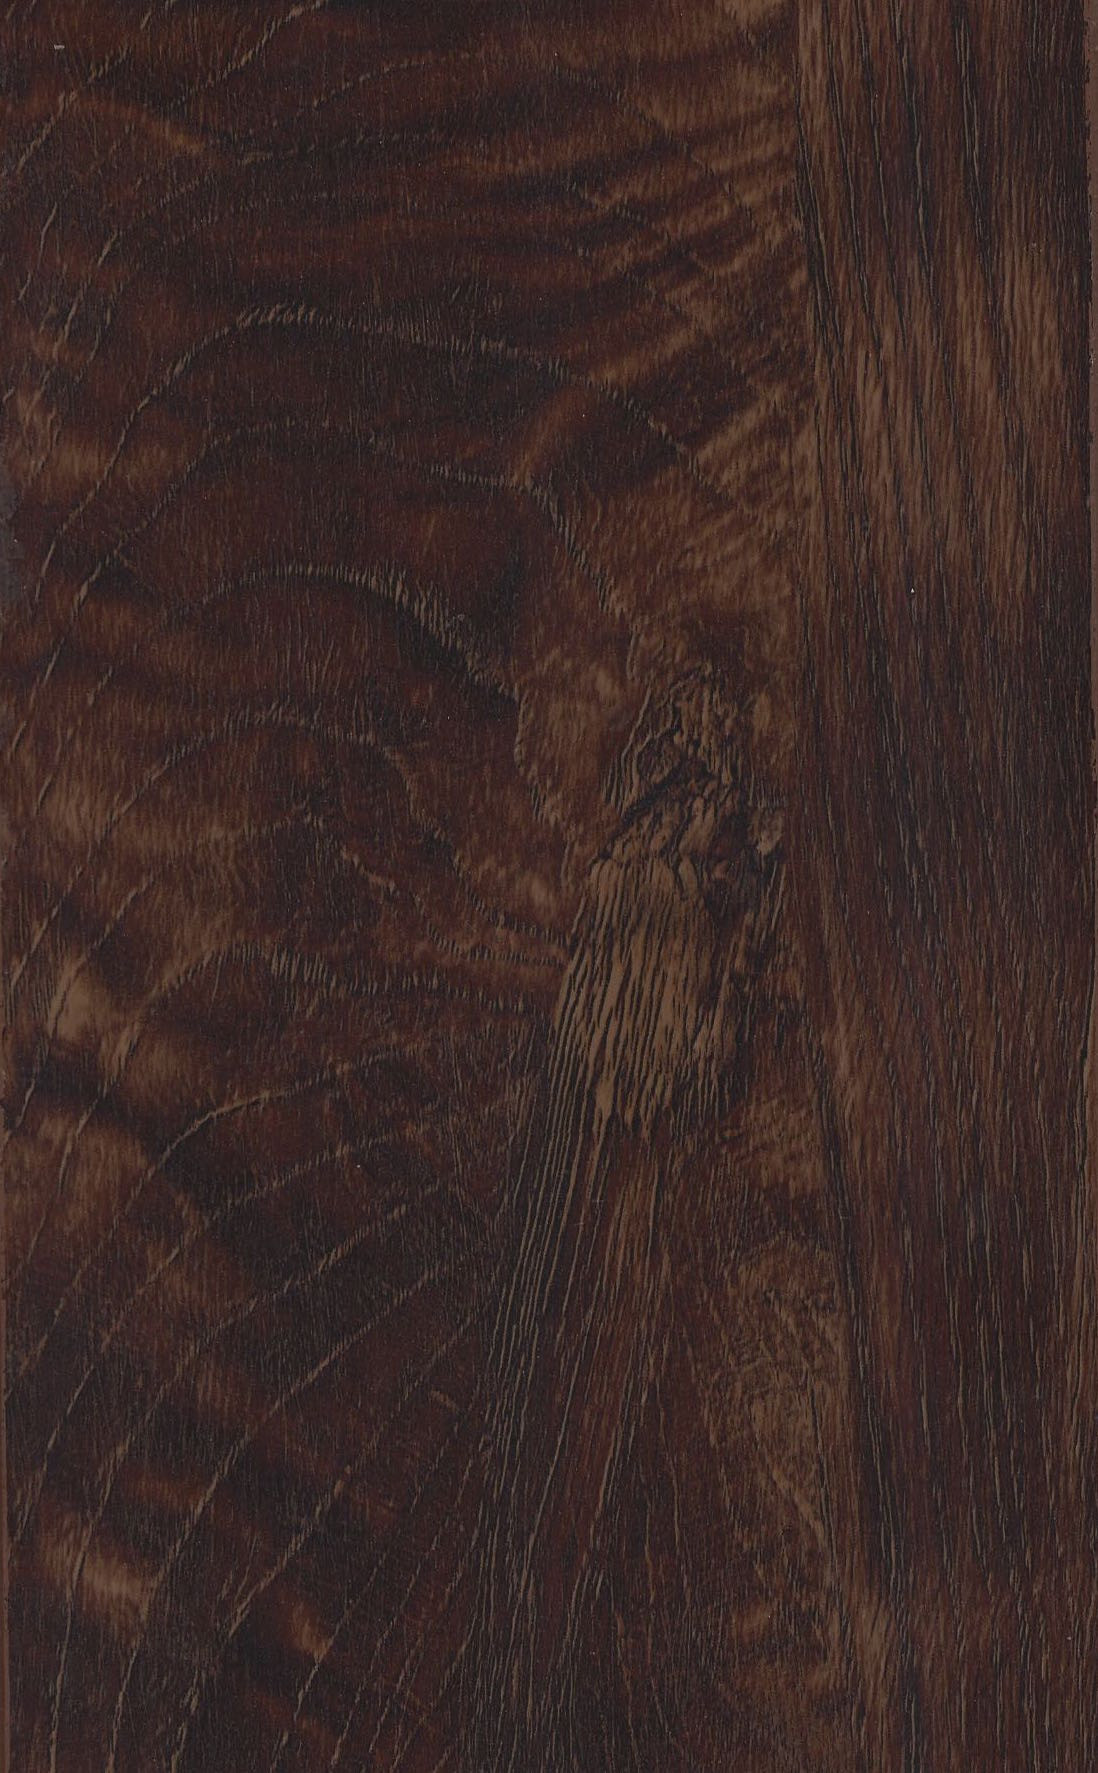 23 Fantastic Hardwood Floor Stain Colors Espresso 2021 free download hardwood floor stain colors espresso of the flooring factory outlet page 4 home flooring ideas within santa barbara 805 productions source ac2b7 the flooring factory outlet we carry more the